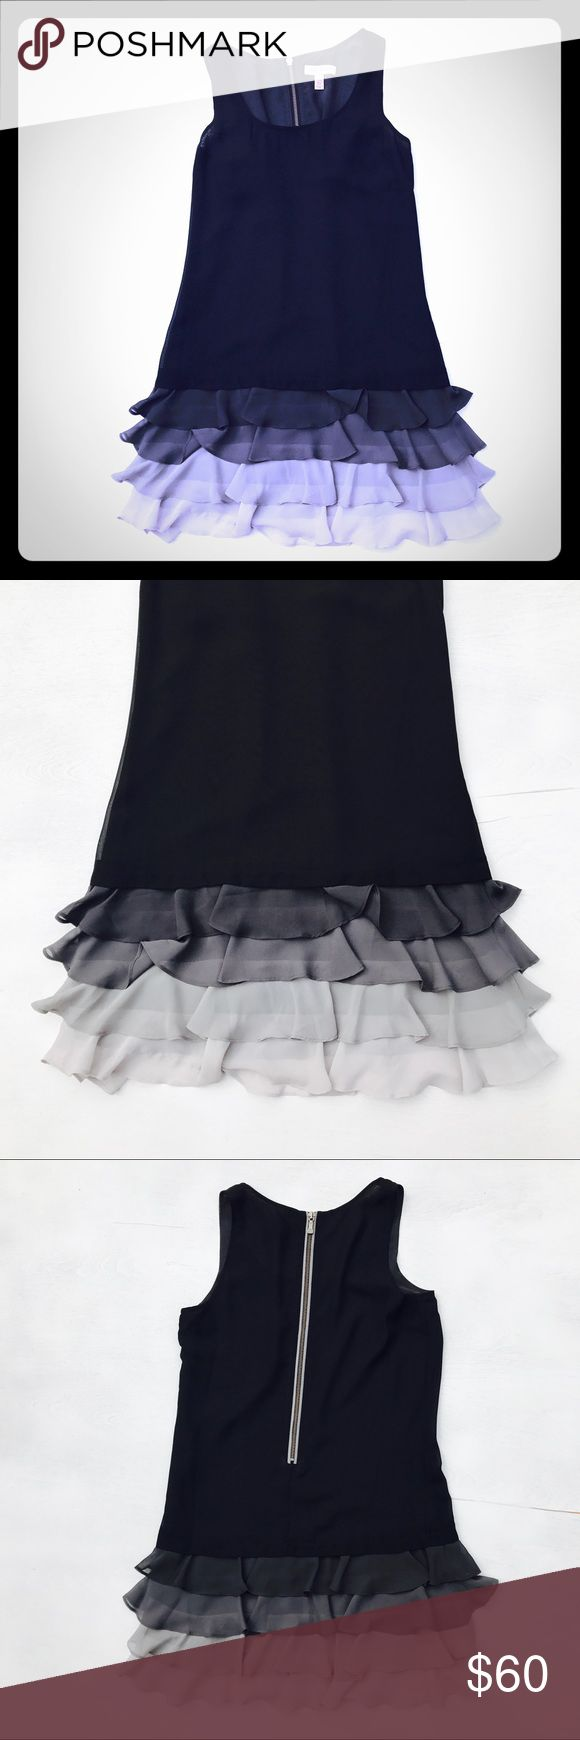 """Ted Baker Transparent Black Party Mini Dress Ted Baker London Transparent Black Party / Cocktail Mini Dress with Gray Ruffles  Measurements: Chest 34"""" Length 33"""" (short mini dress / tunic length) See thru - would look great over a slip or tank top with leggings - bang on trend :) Ted Baker Dresses Mini"""